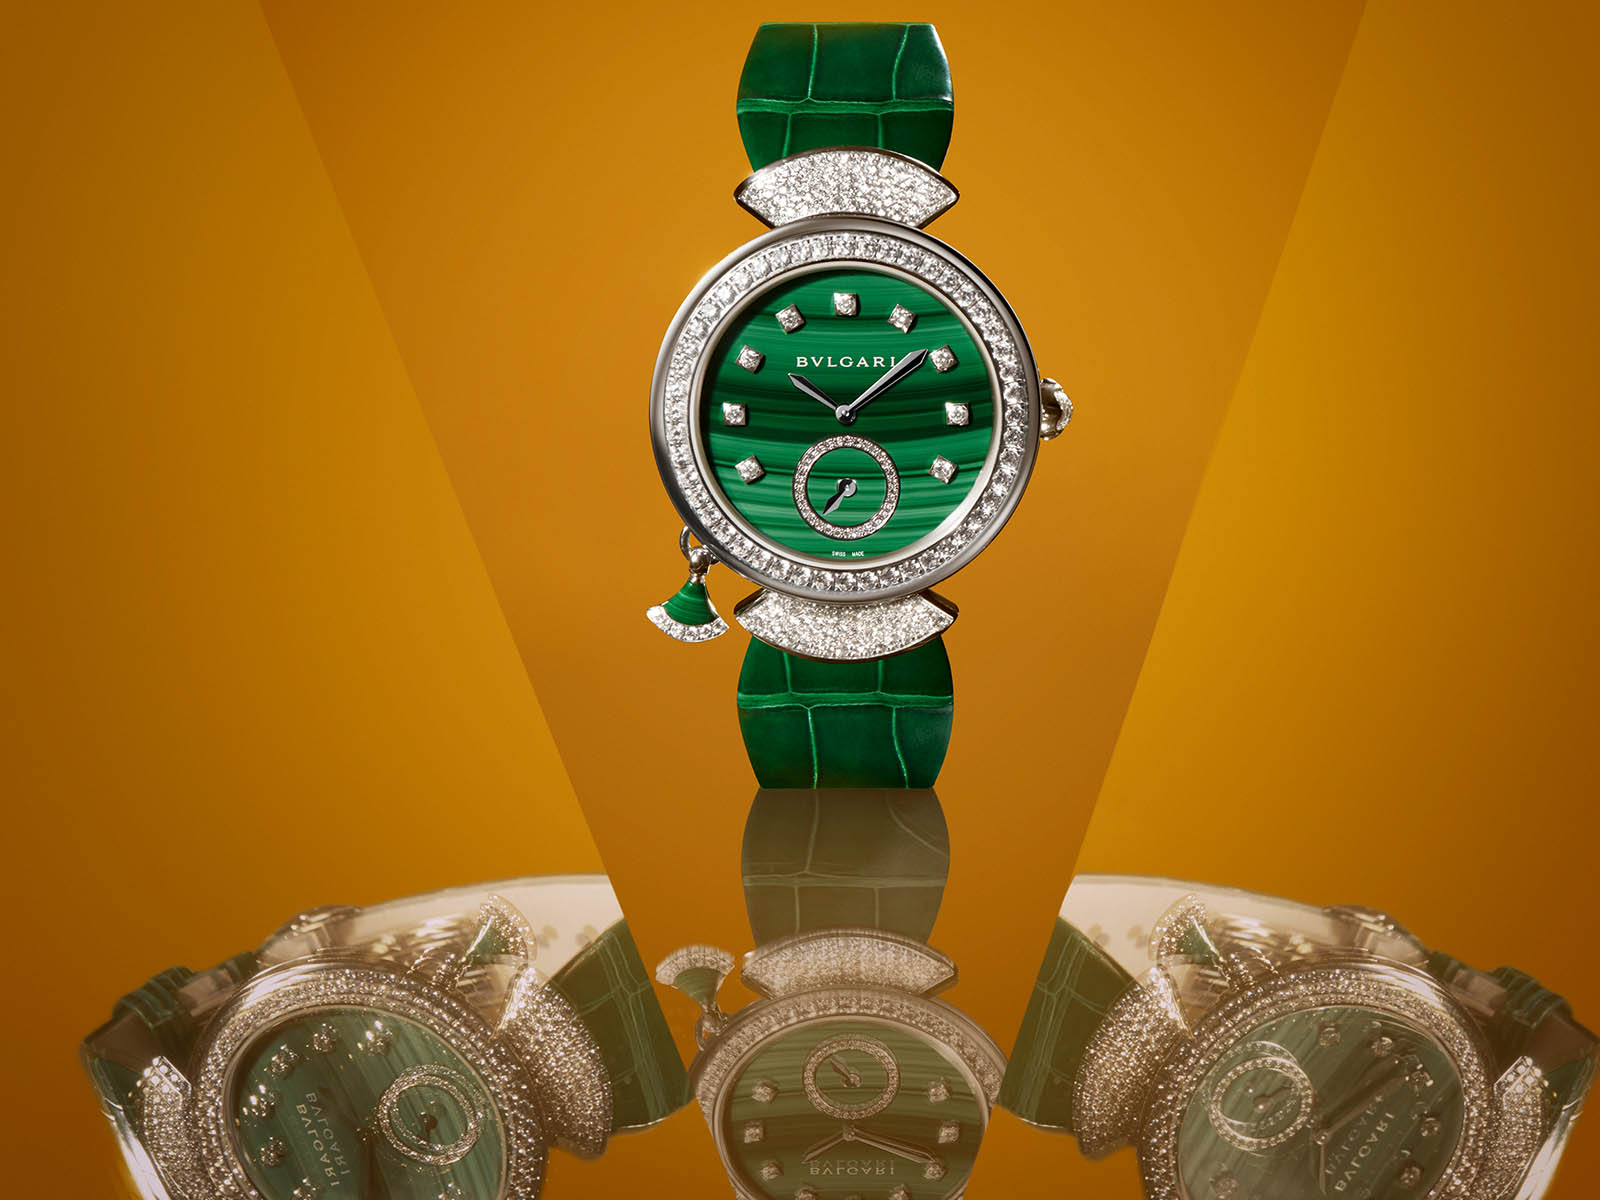 103282-bulgari-divas-dream-finissima-minute-repeater-malachite-2.jpg